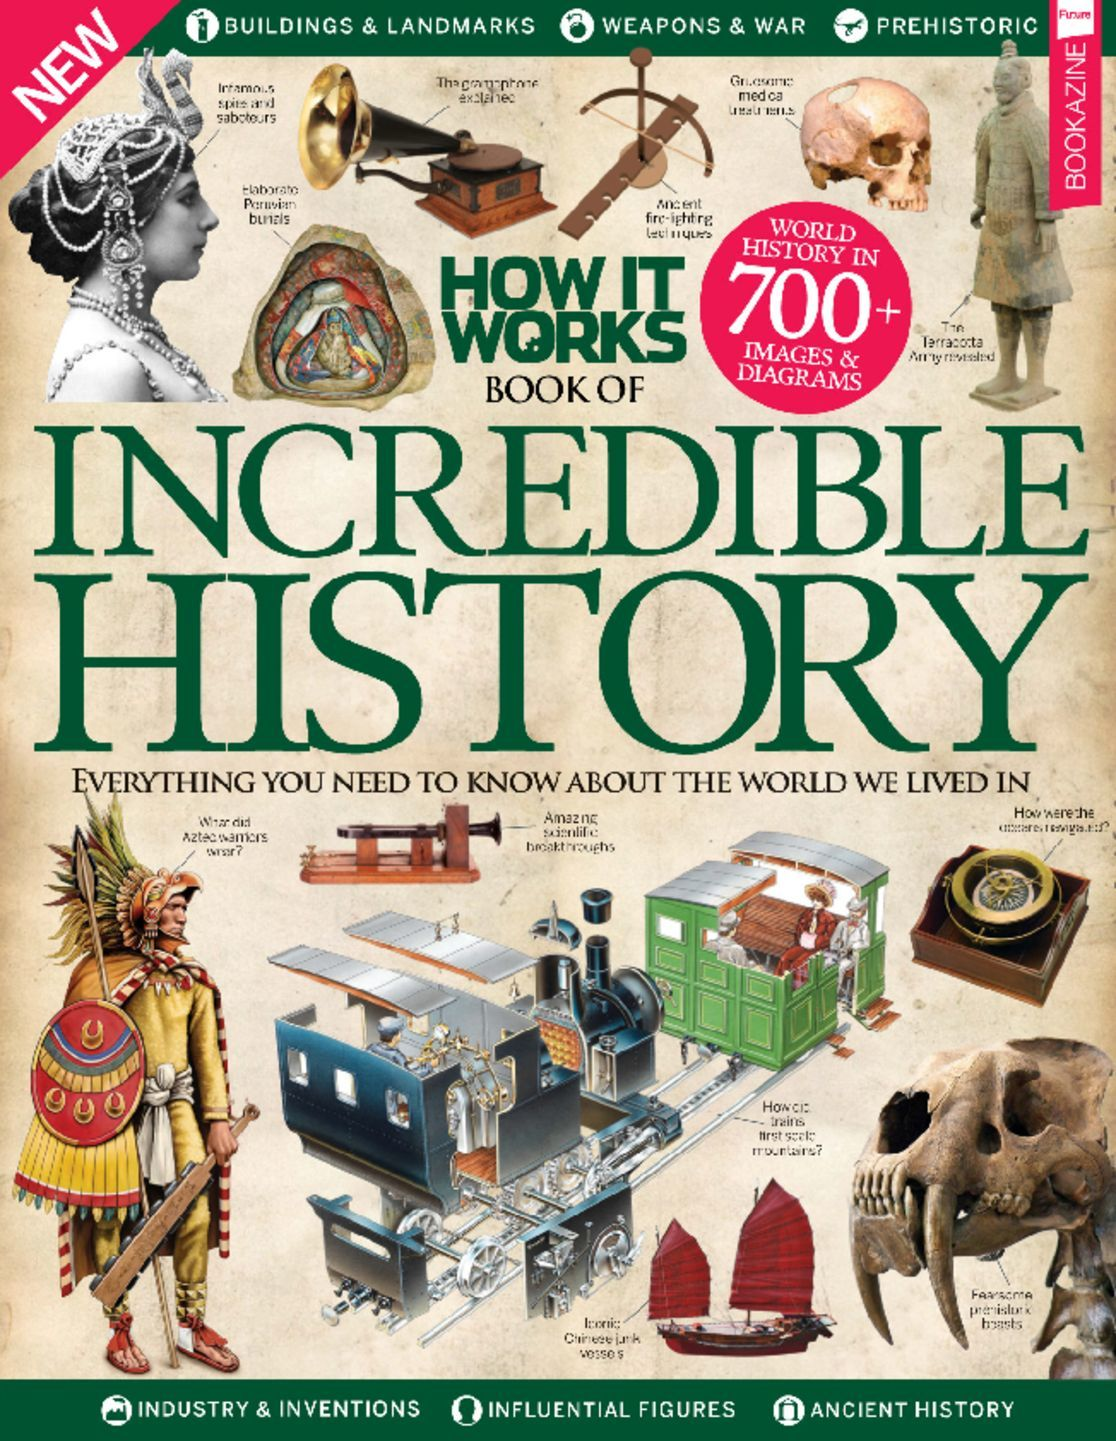 How It Works Book of Incredible History Digital